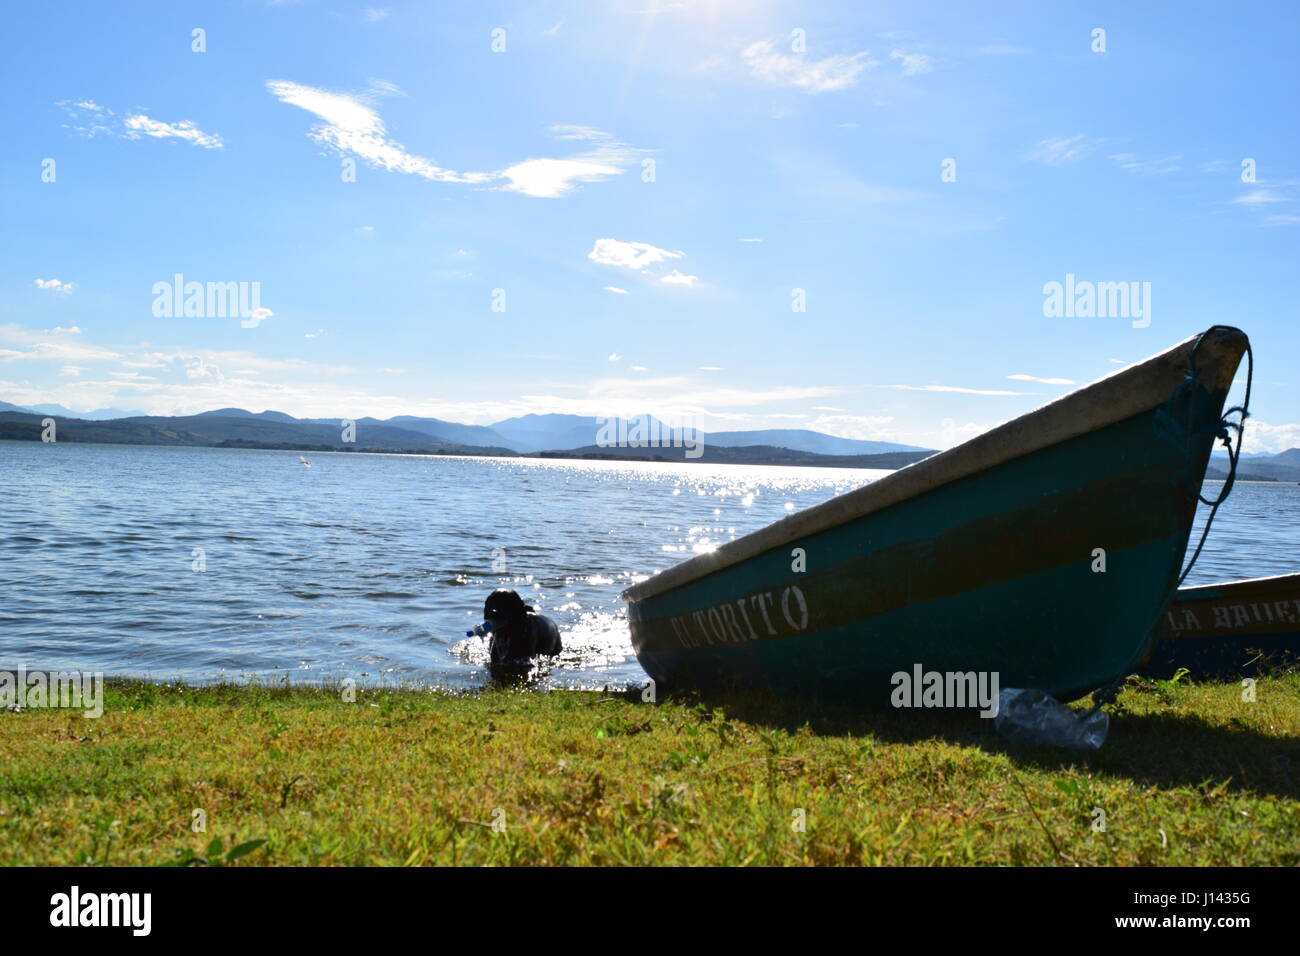 Boat for artisanal fishing in Lake Güija , El Salvador - Stock Image